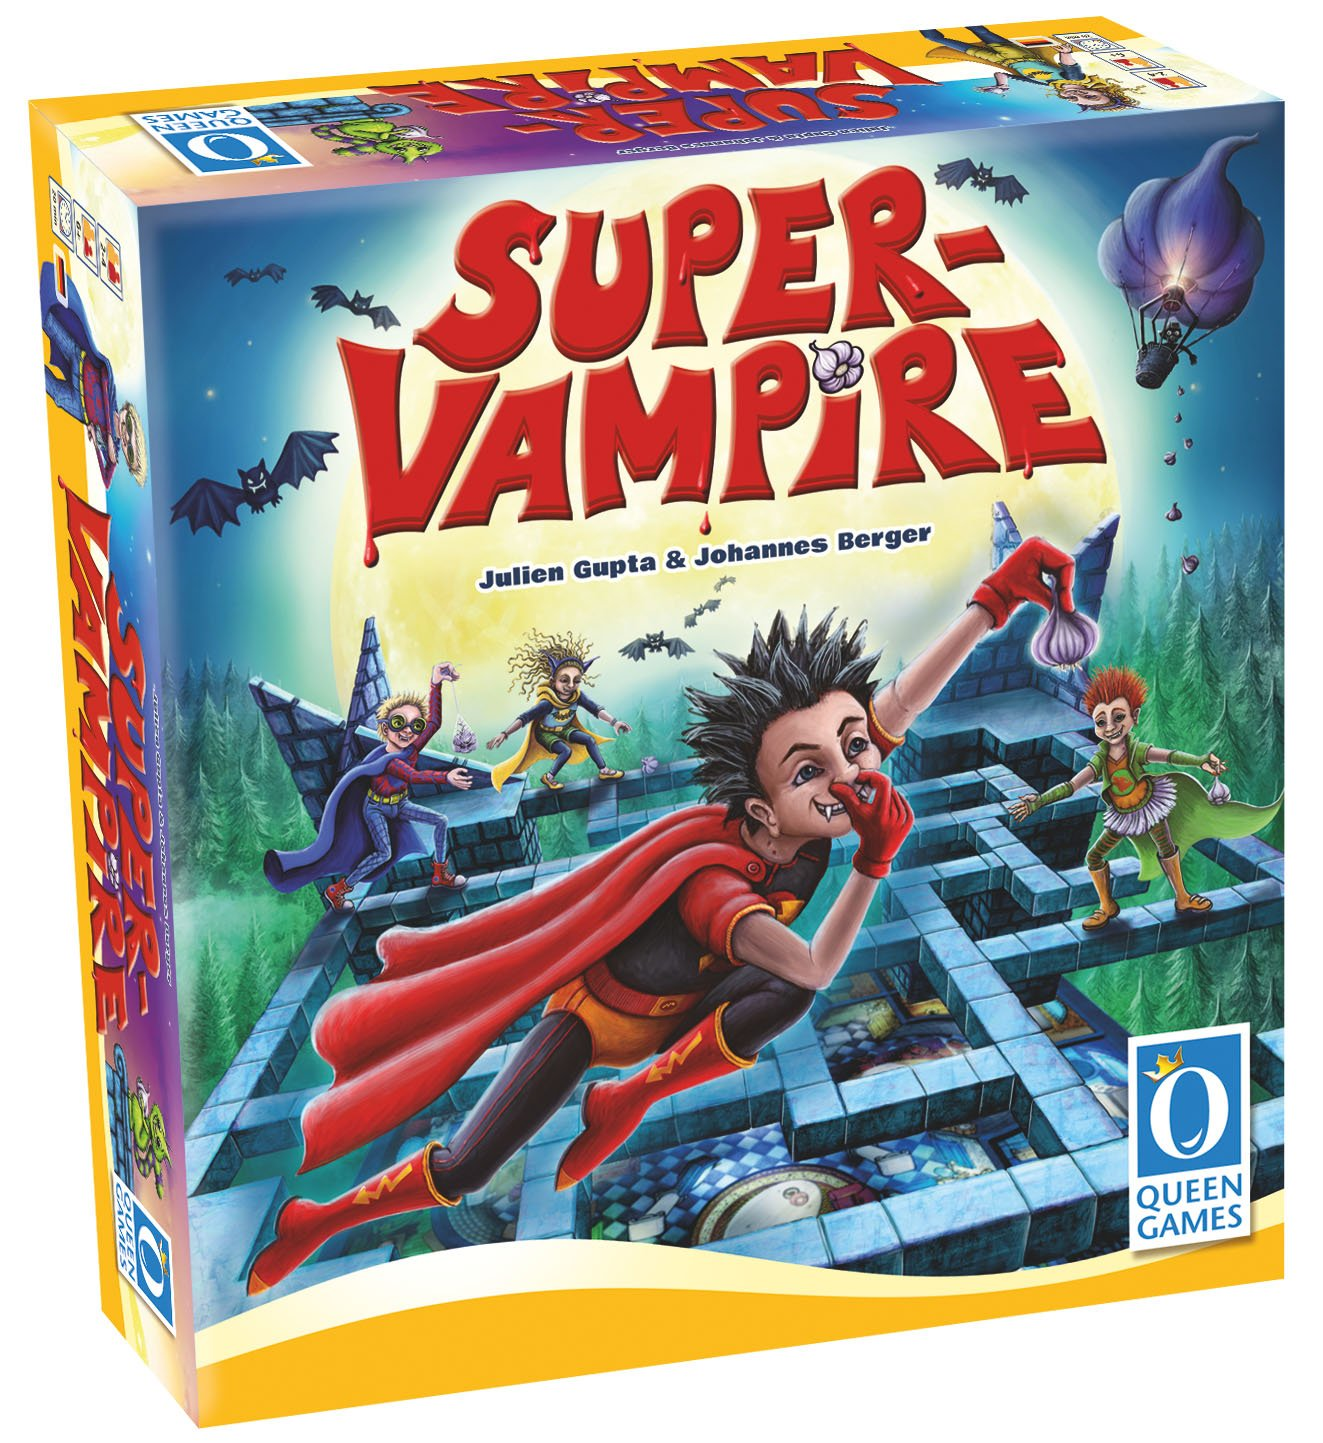 Queen Games Super Vampire amazon